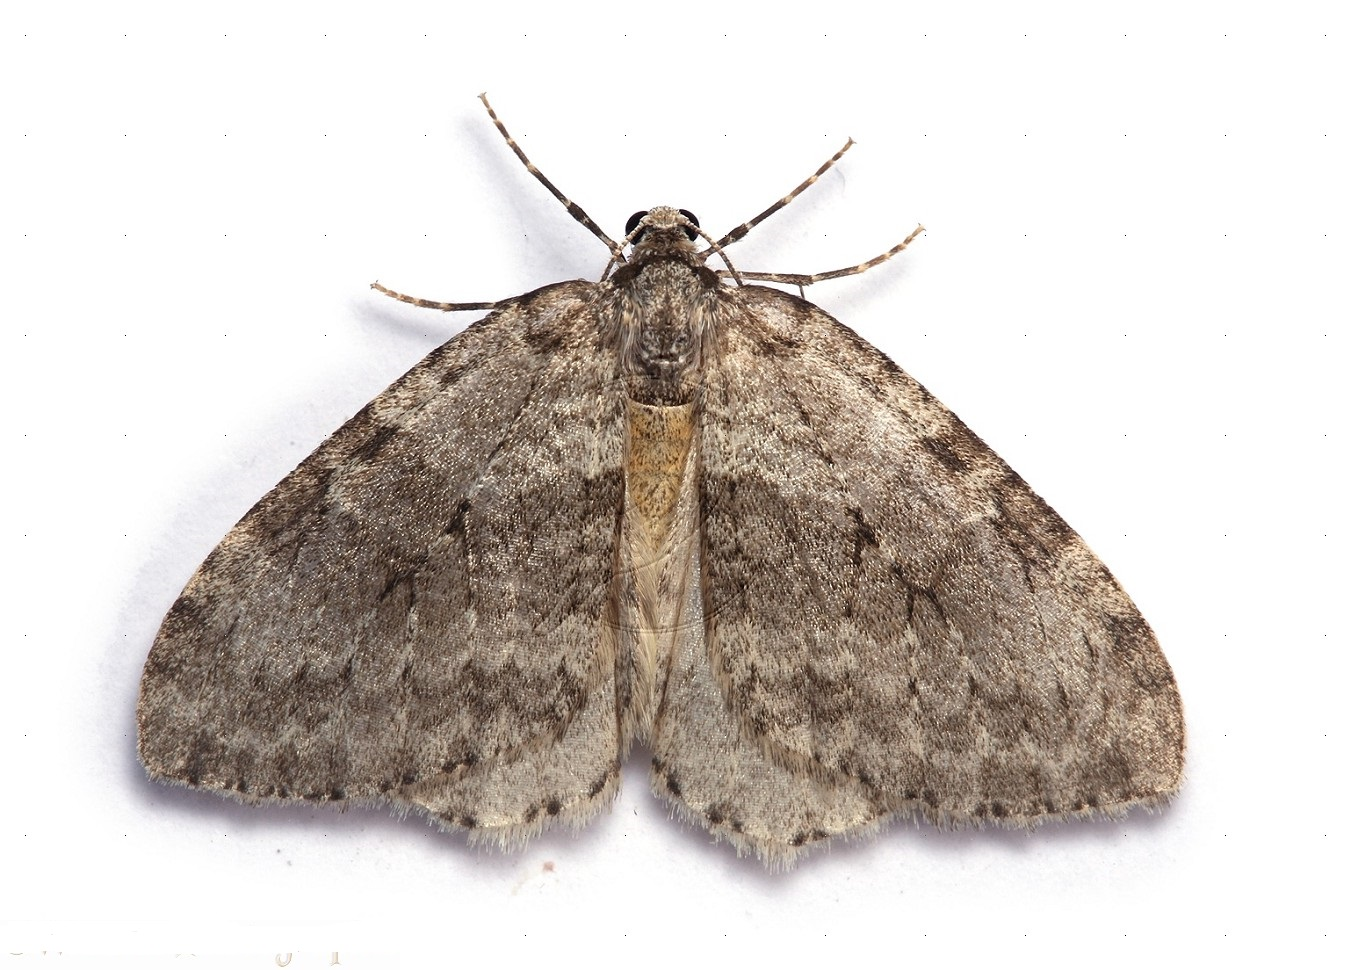 The Clothing Moth (Tineola bisselliella)